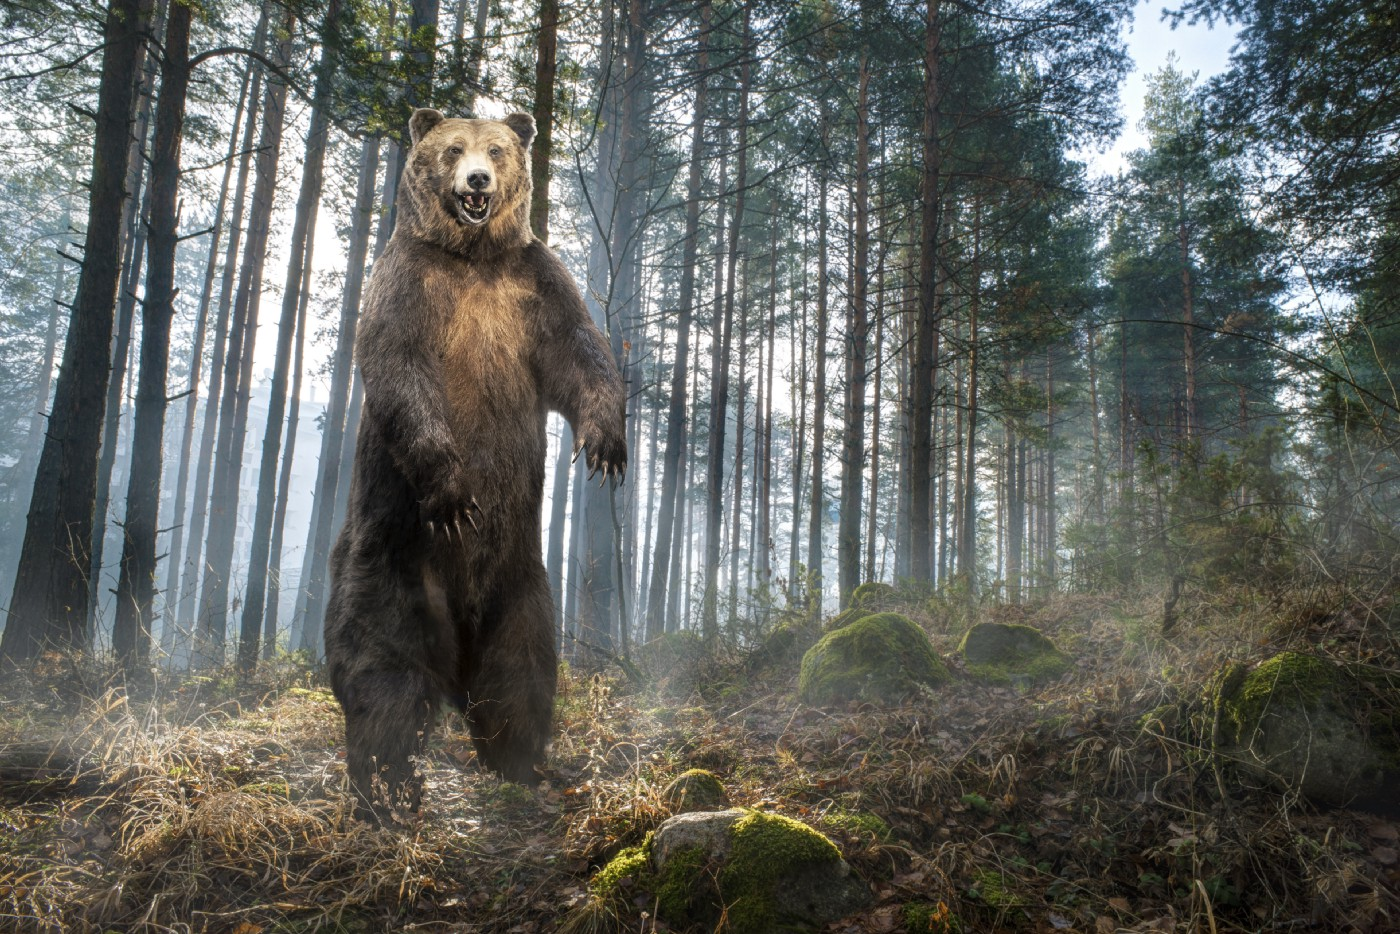 Standing Grizzly in a wood.